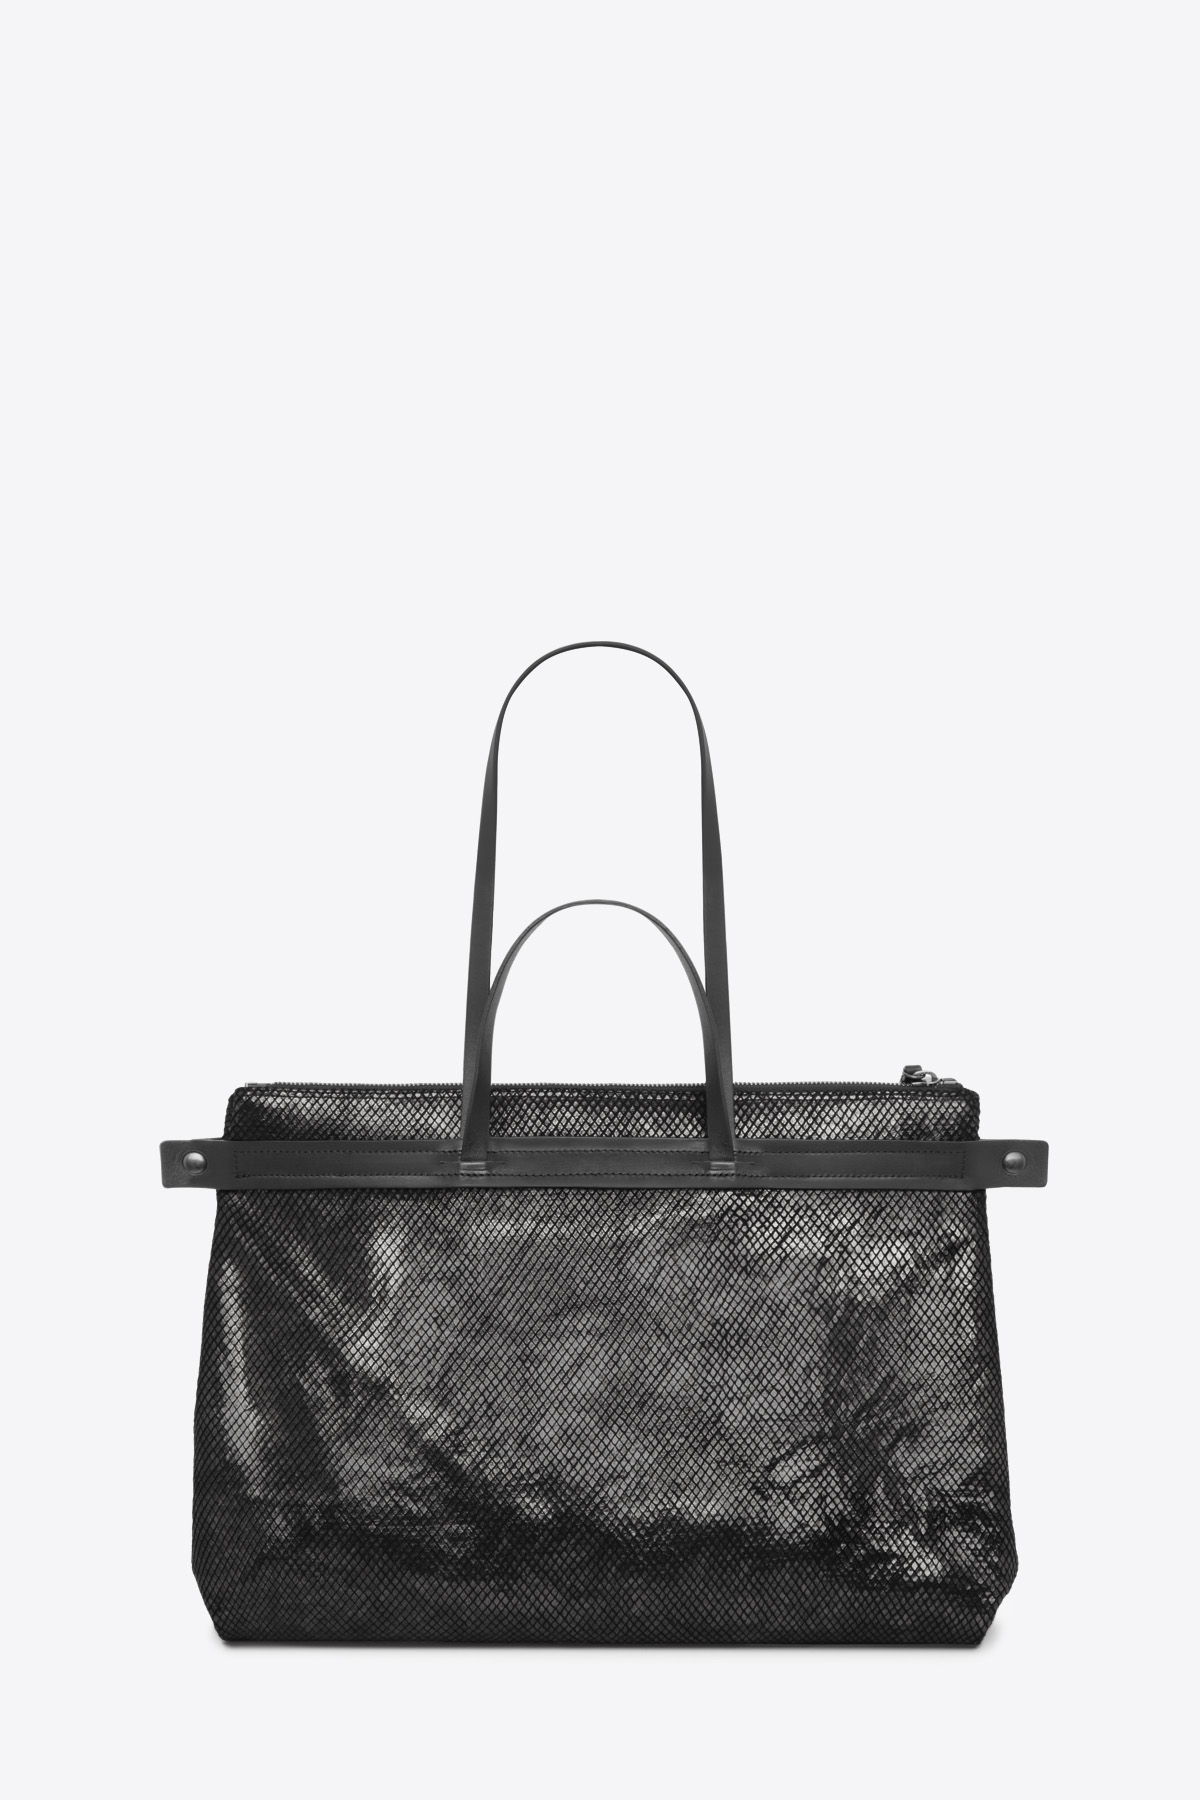 dclr007l-tote-a23-backsnakeblack-back